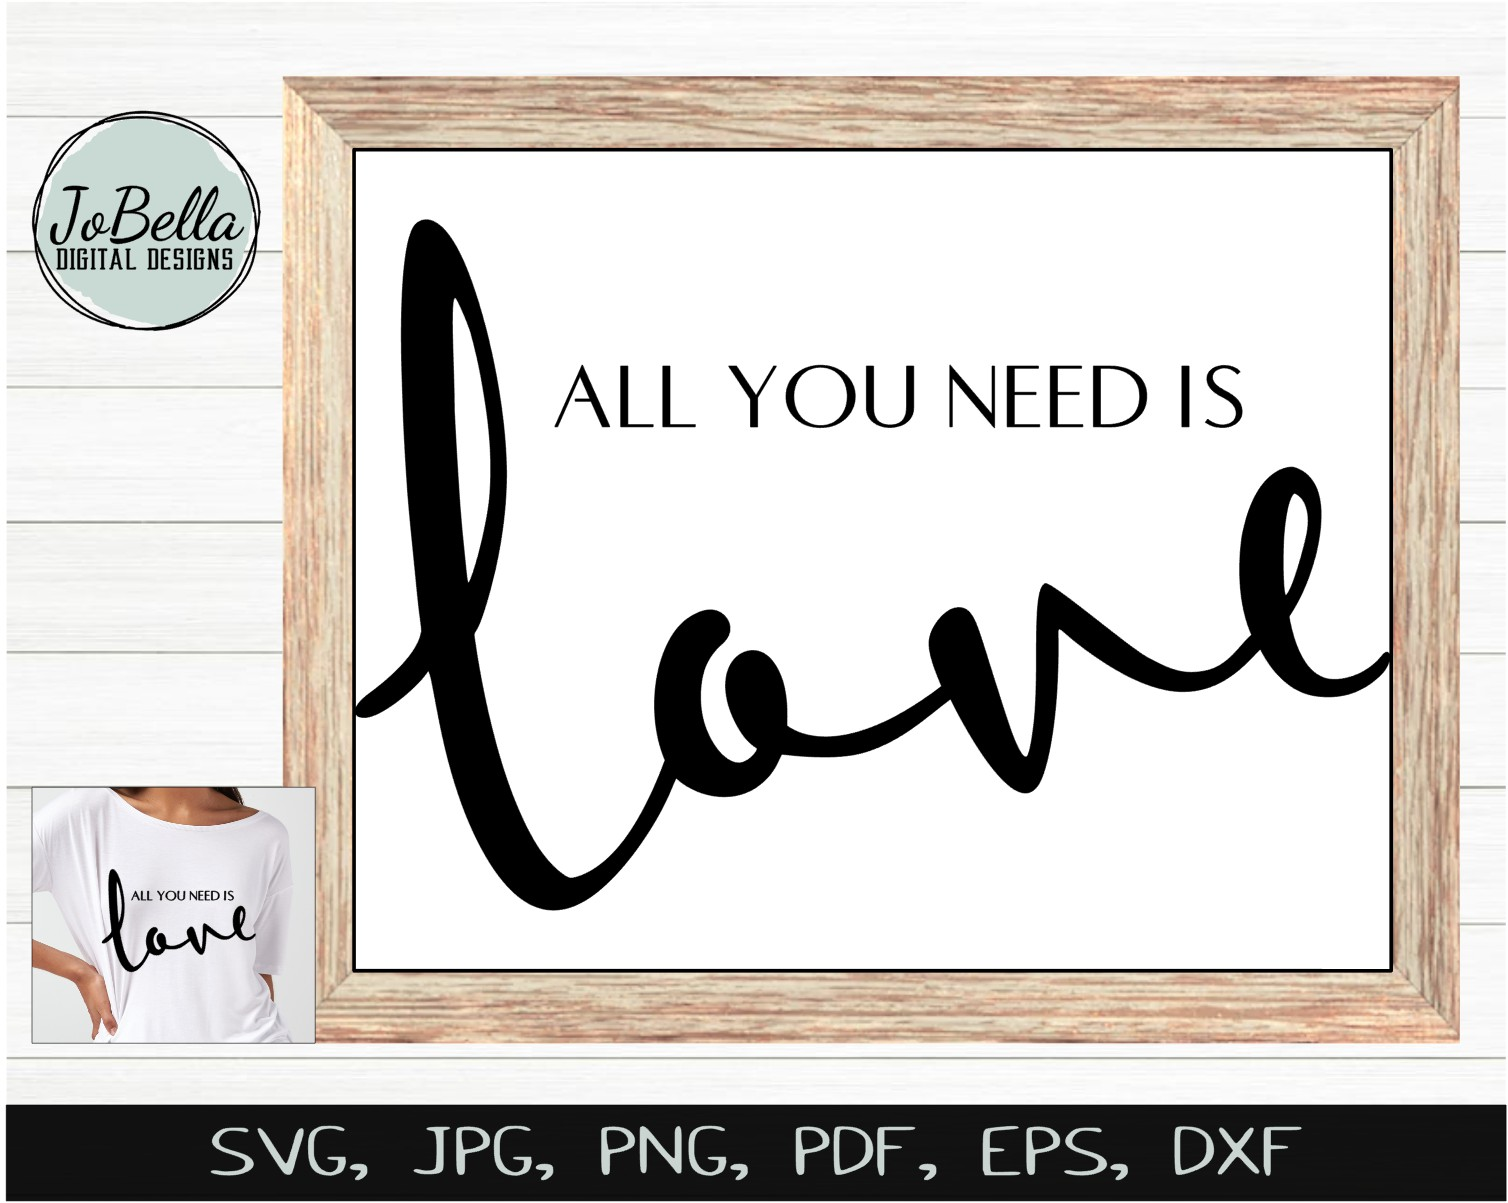 Beatles All You Need Is Love Svg And Printable Jobella Digital Designs